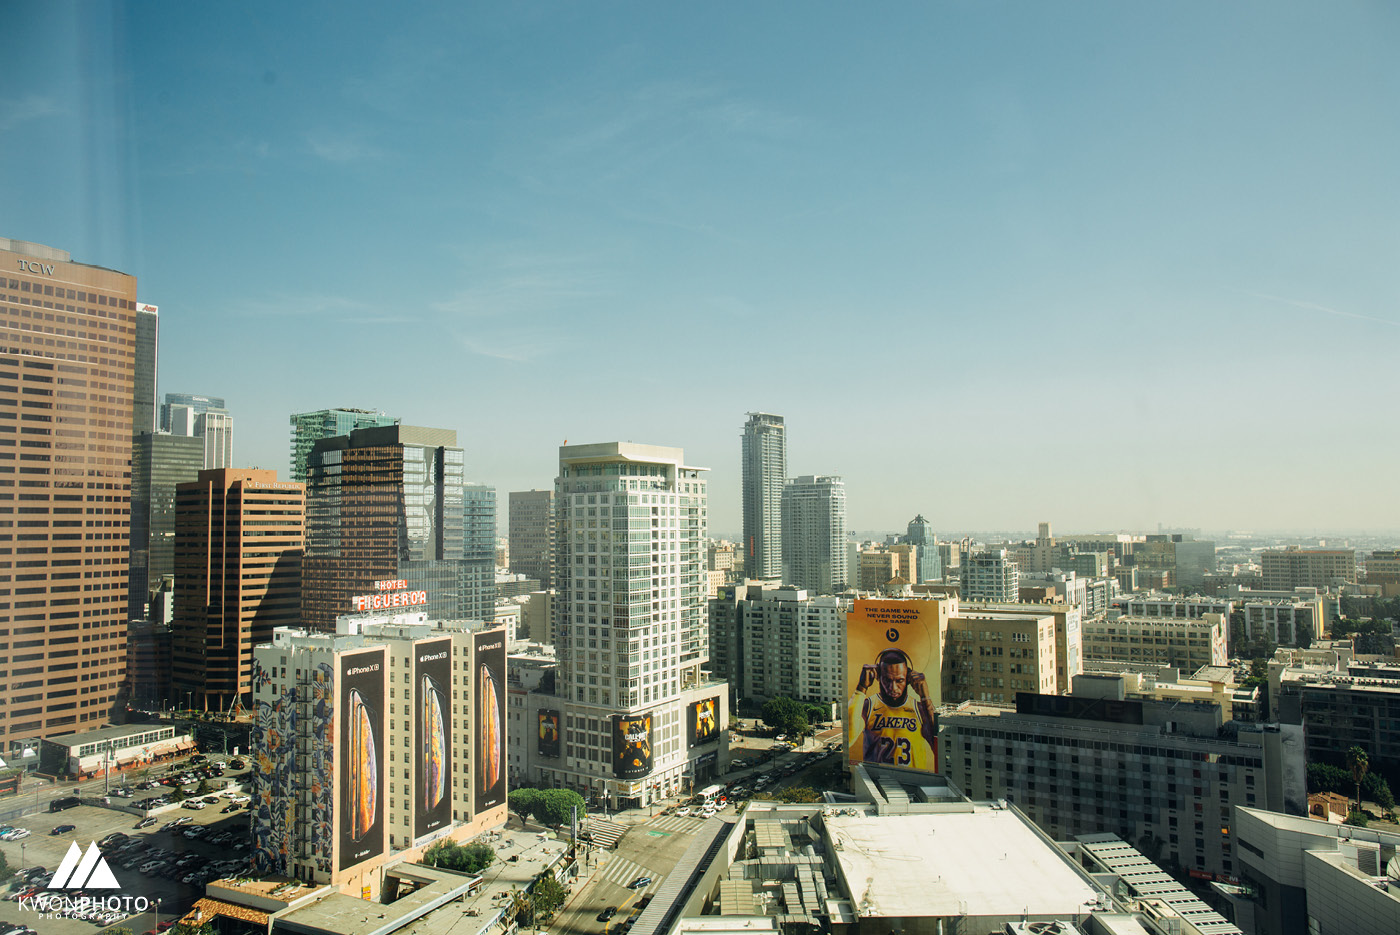 OUE-Skyspace-LA-DTLA-KWON-PHOTO-web-2.jpg